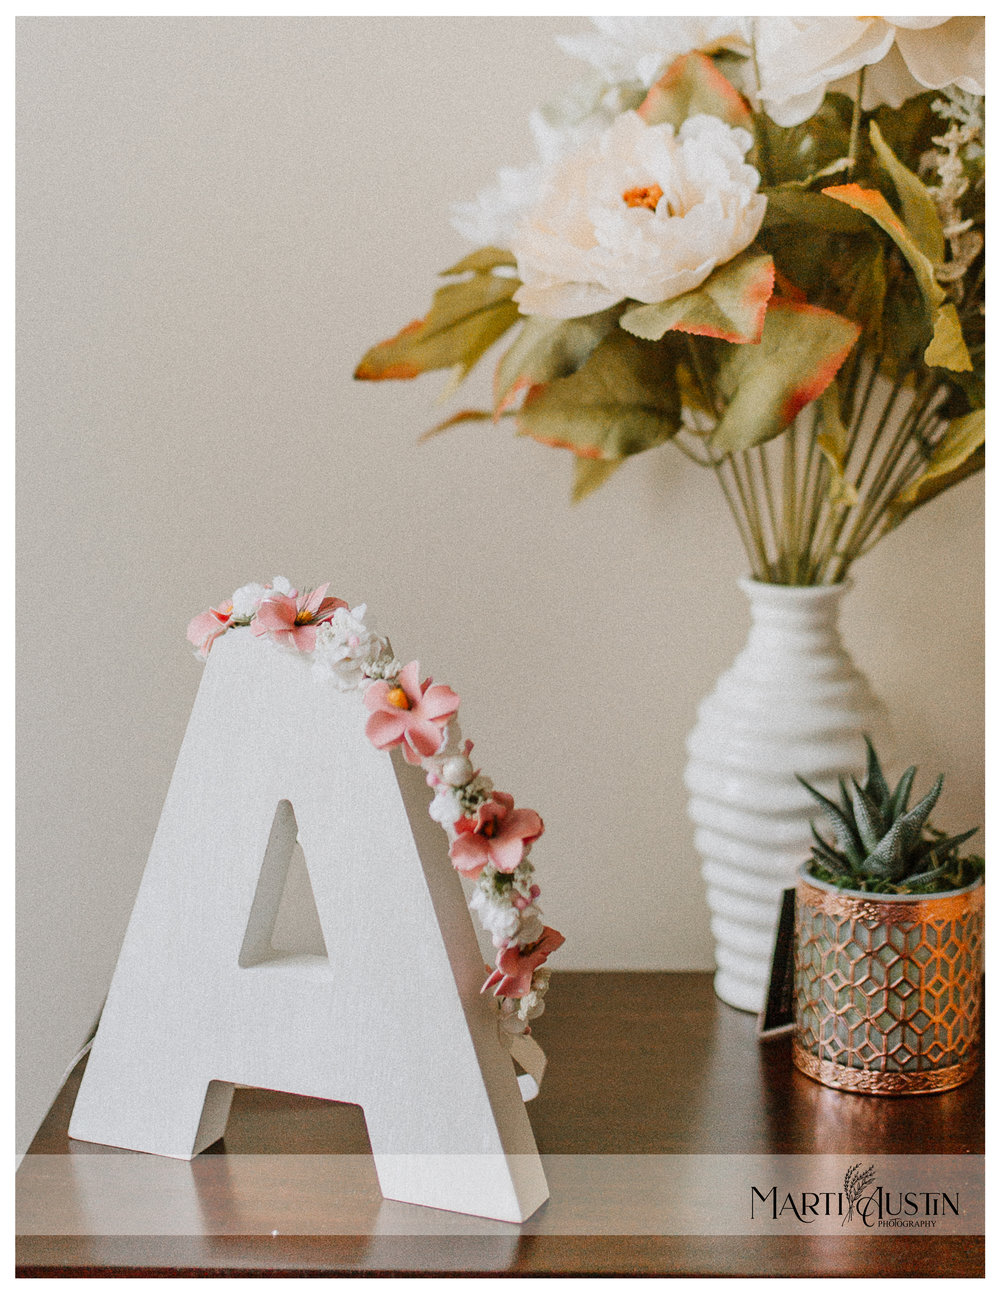 """Pink and white flower crown resting on a wooden letter """"A"""" on a table with flowers"""